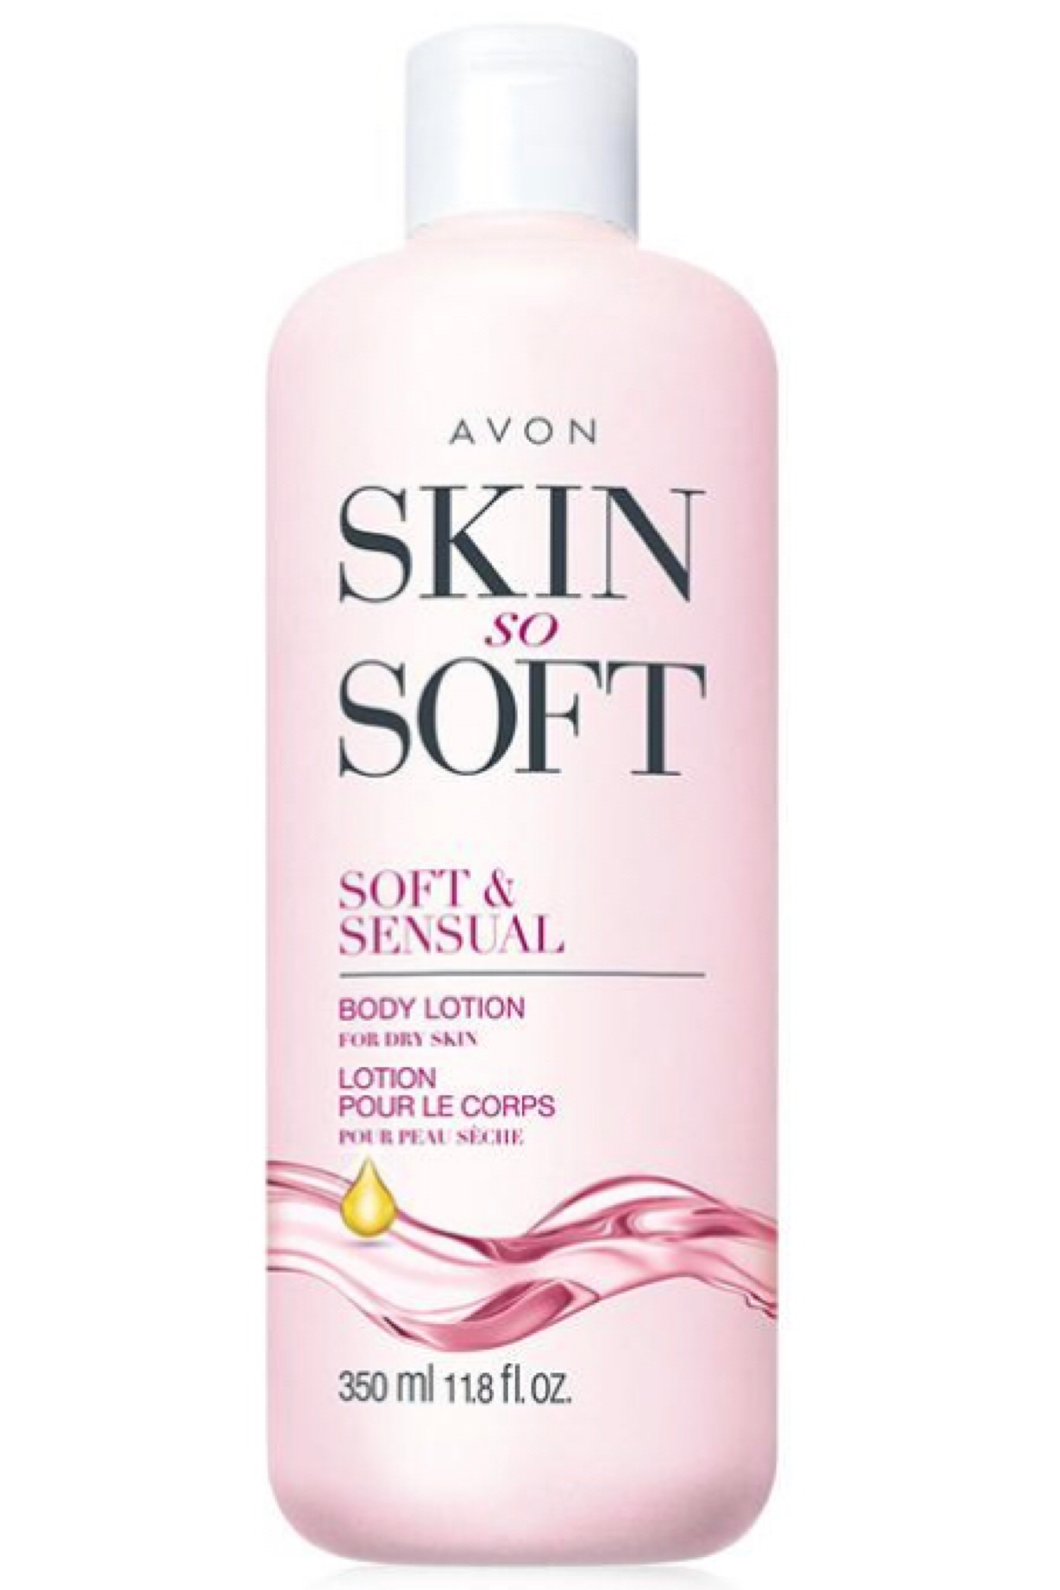 Skin So Soft Soft & Sensual Body Lotion 350ml